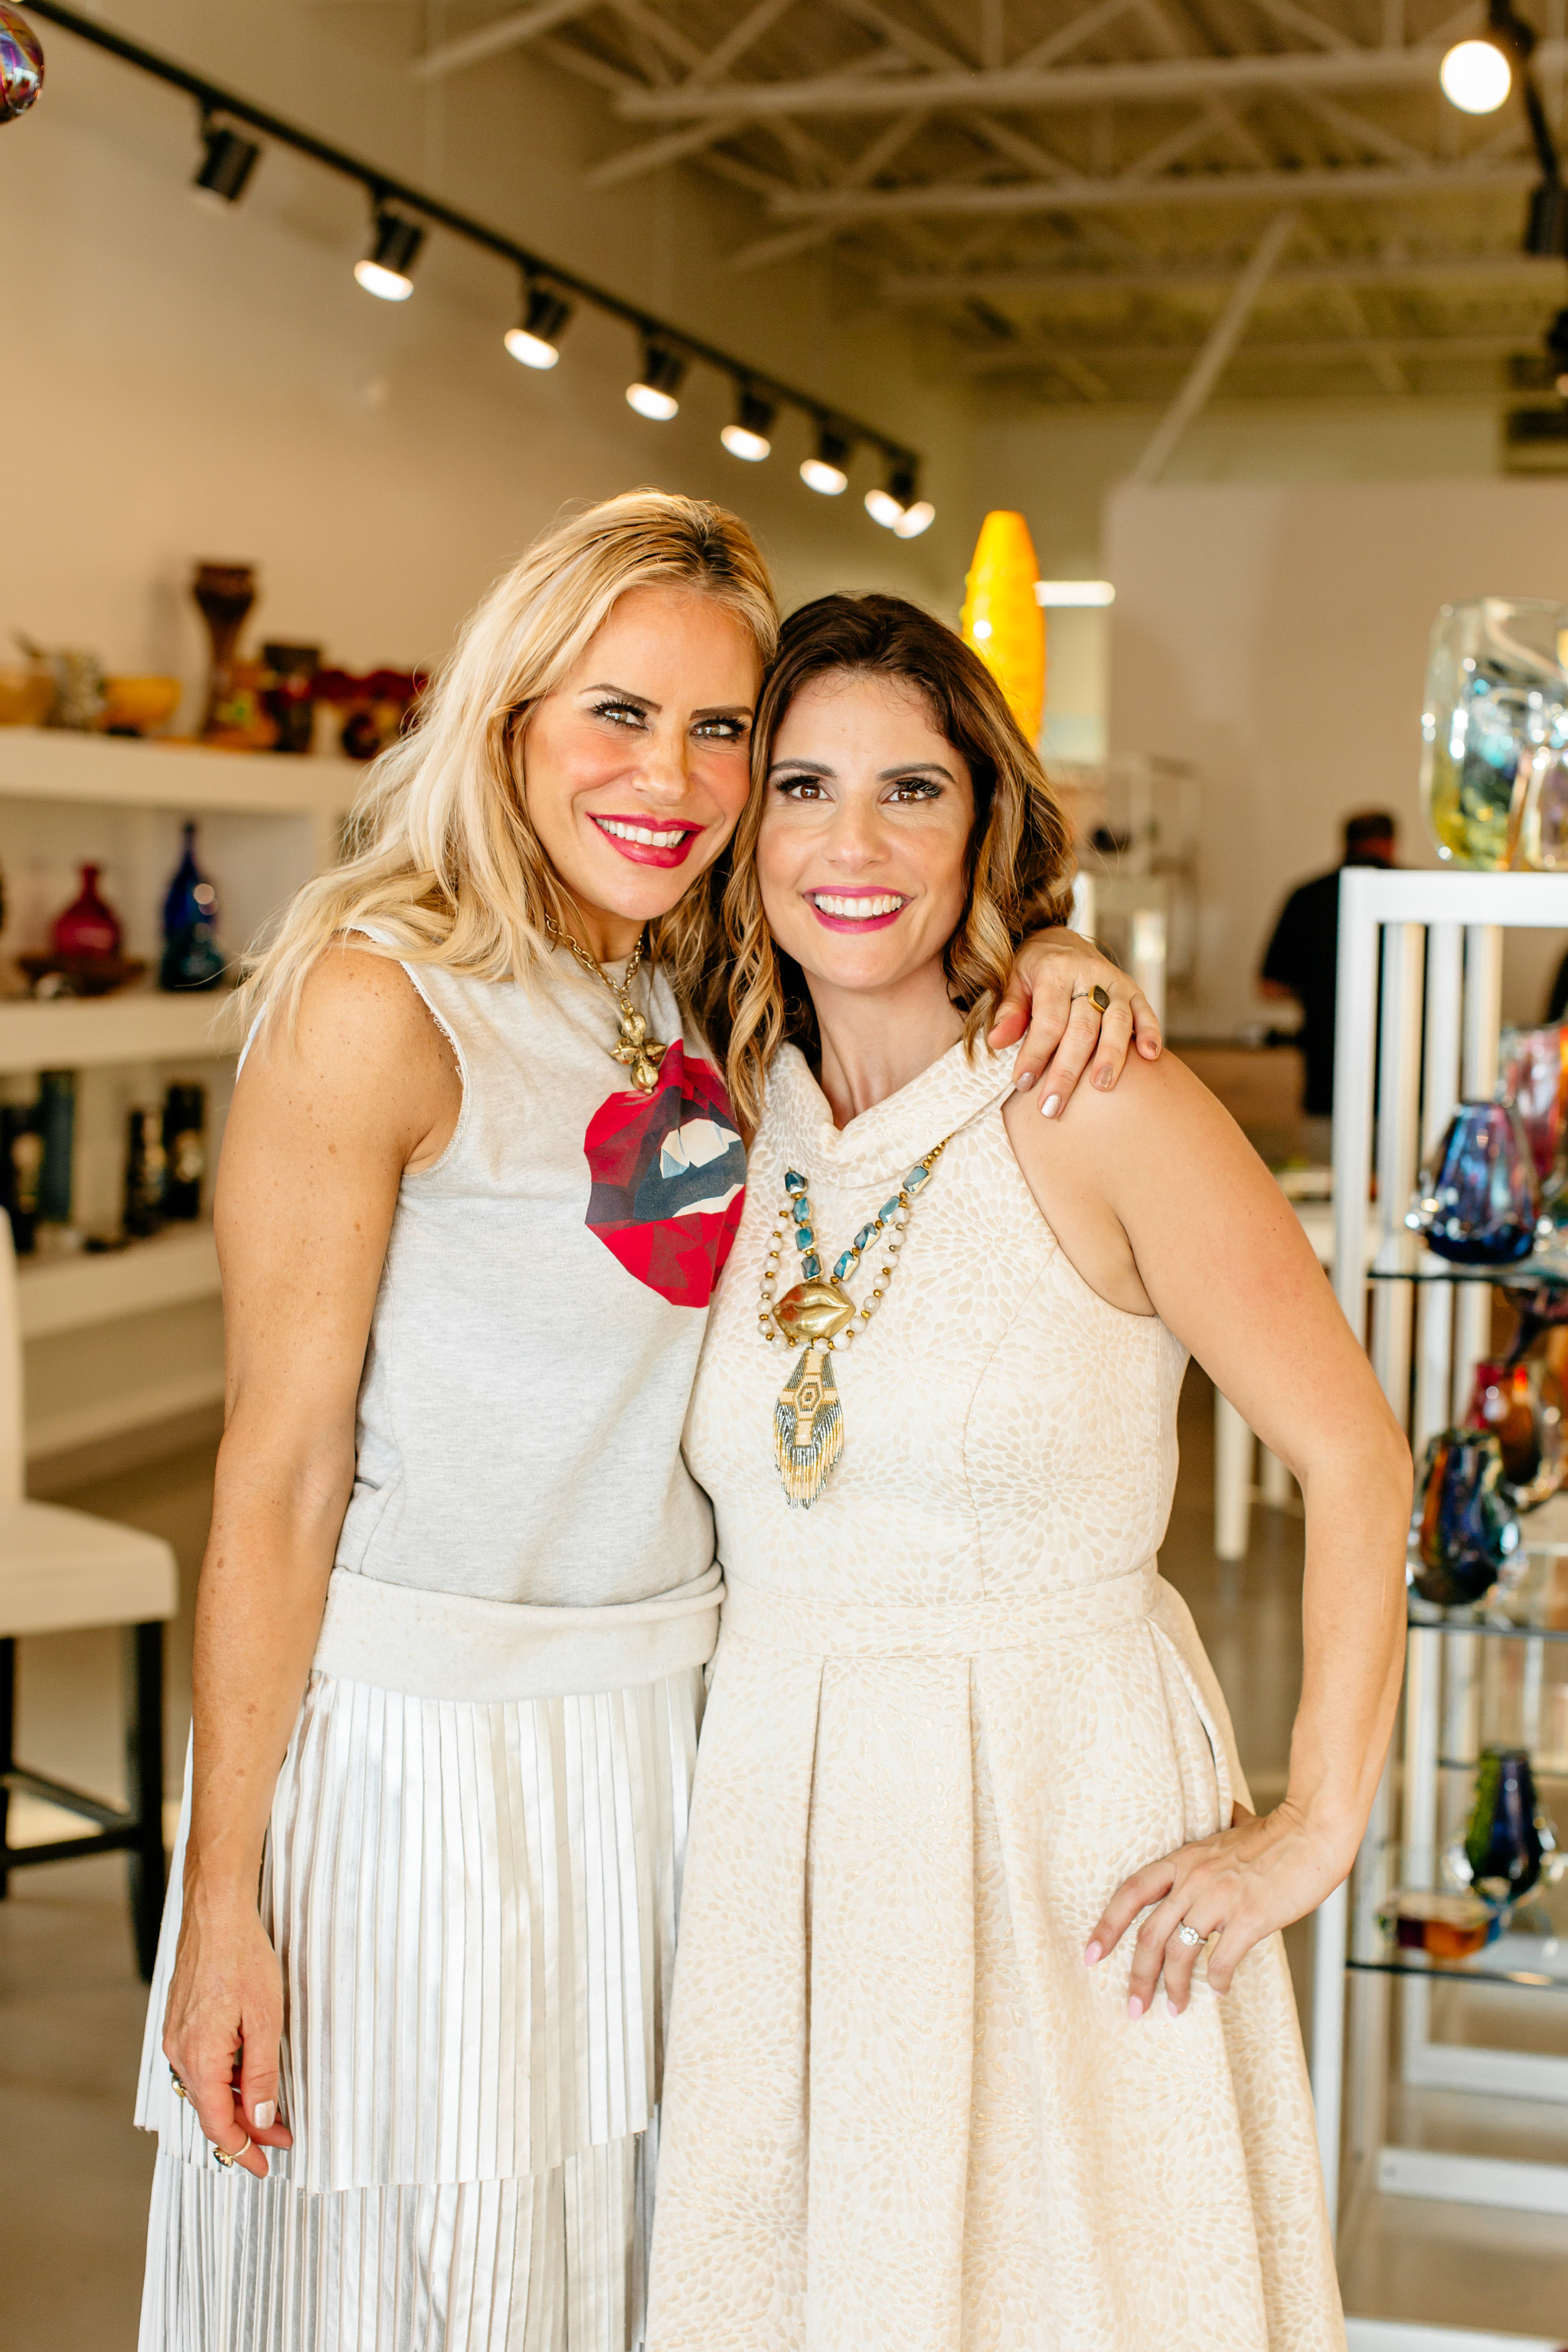 Alexa-Vossler-Photo_Dallas-Event-Photographer_Brite-Bar-Beauty-2018-Lipstick-Launch-Party-27.jpg